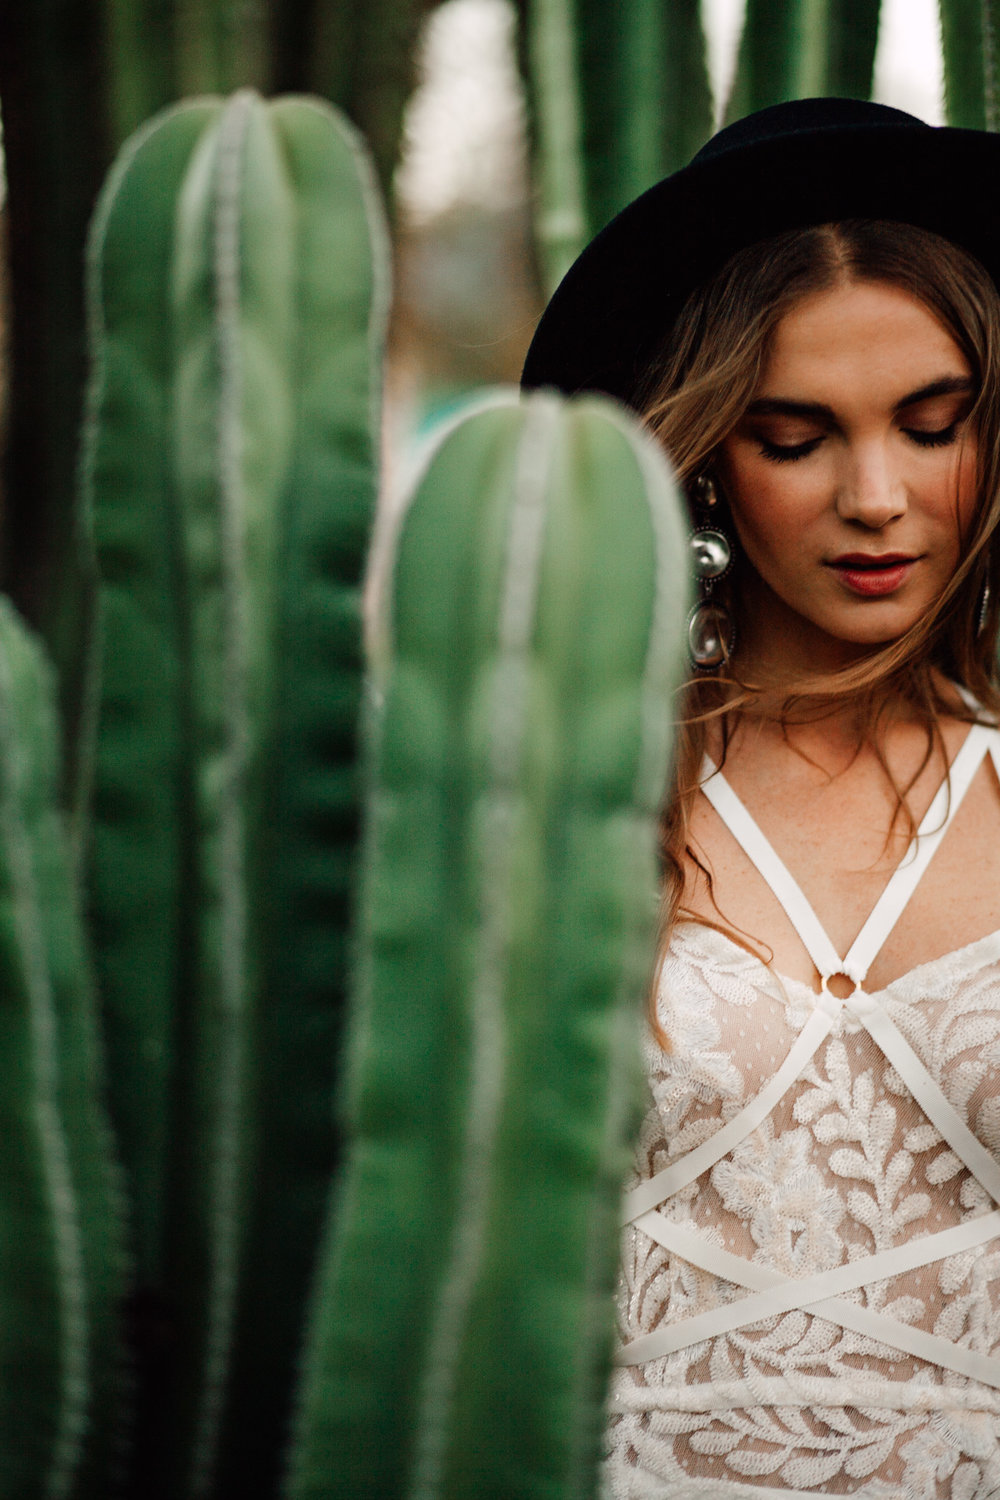 Cape-Town-Pia-Anna-Christian-Wedding-Photography-South-Africa-Bride-Cactus-23.jpg